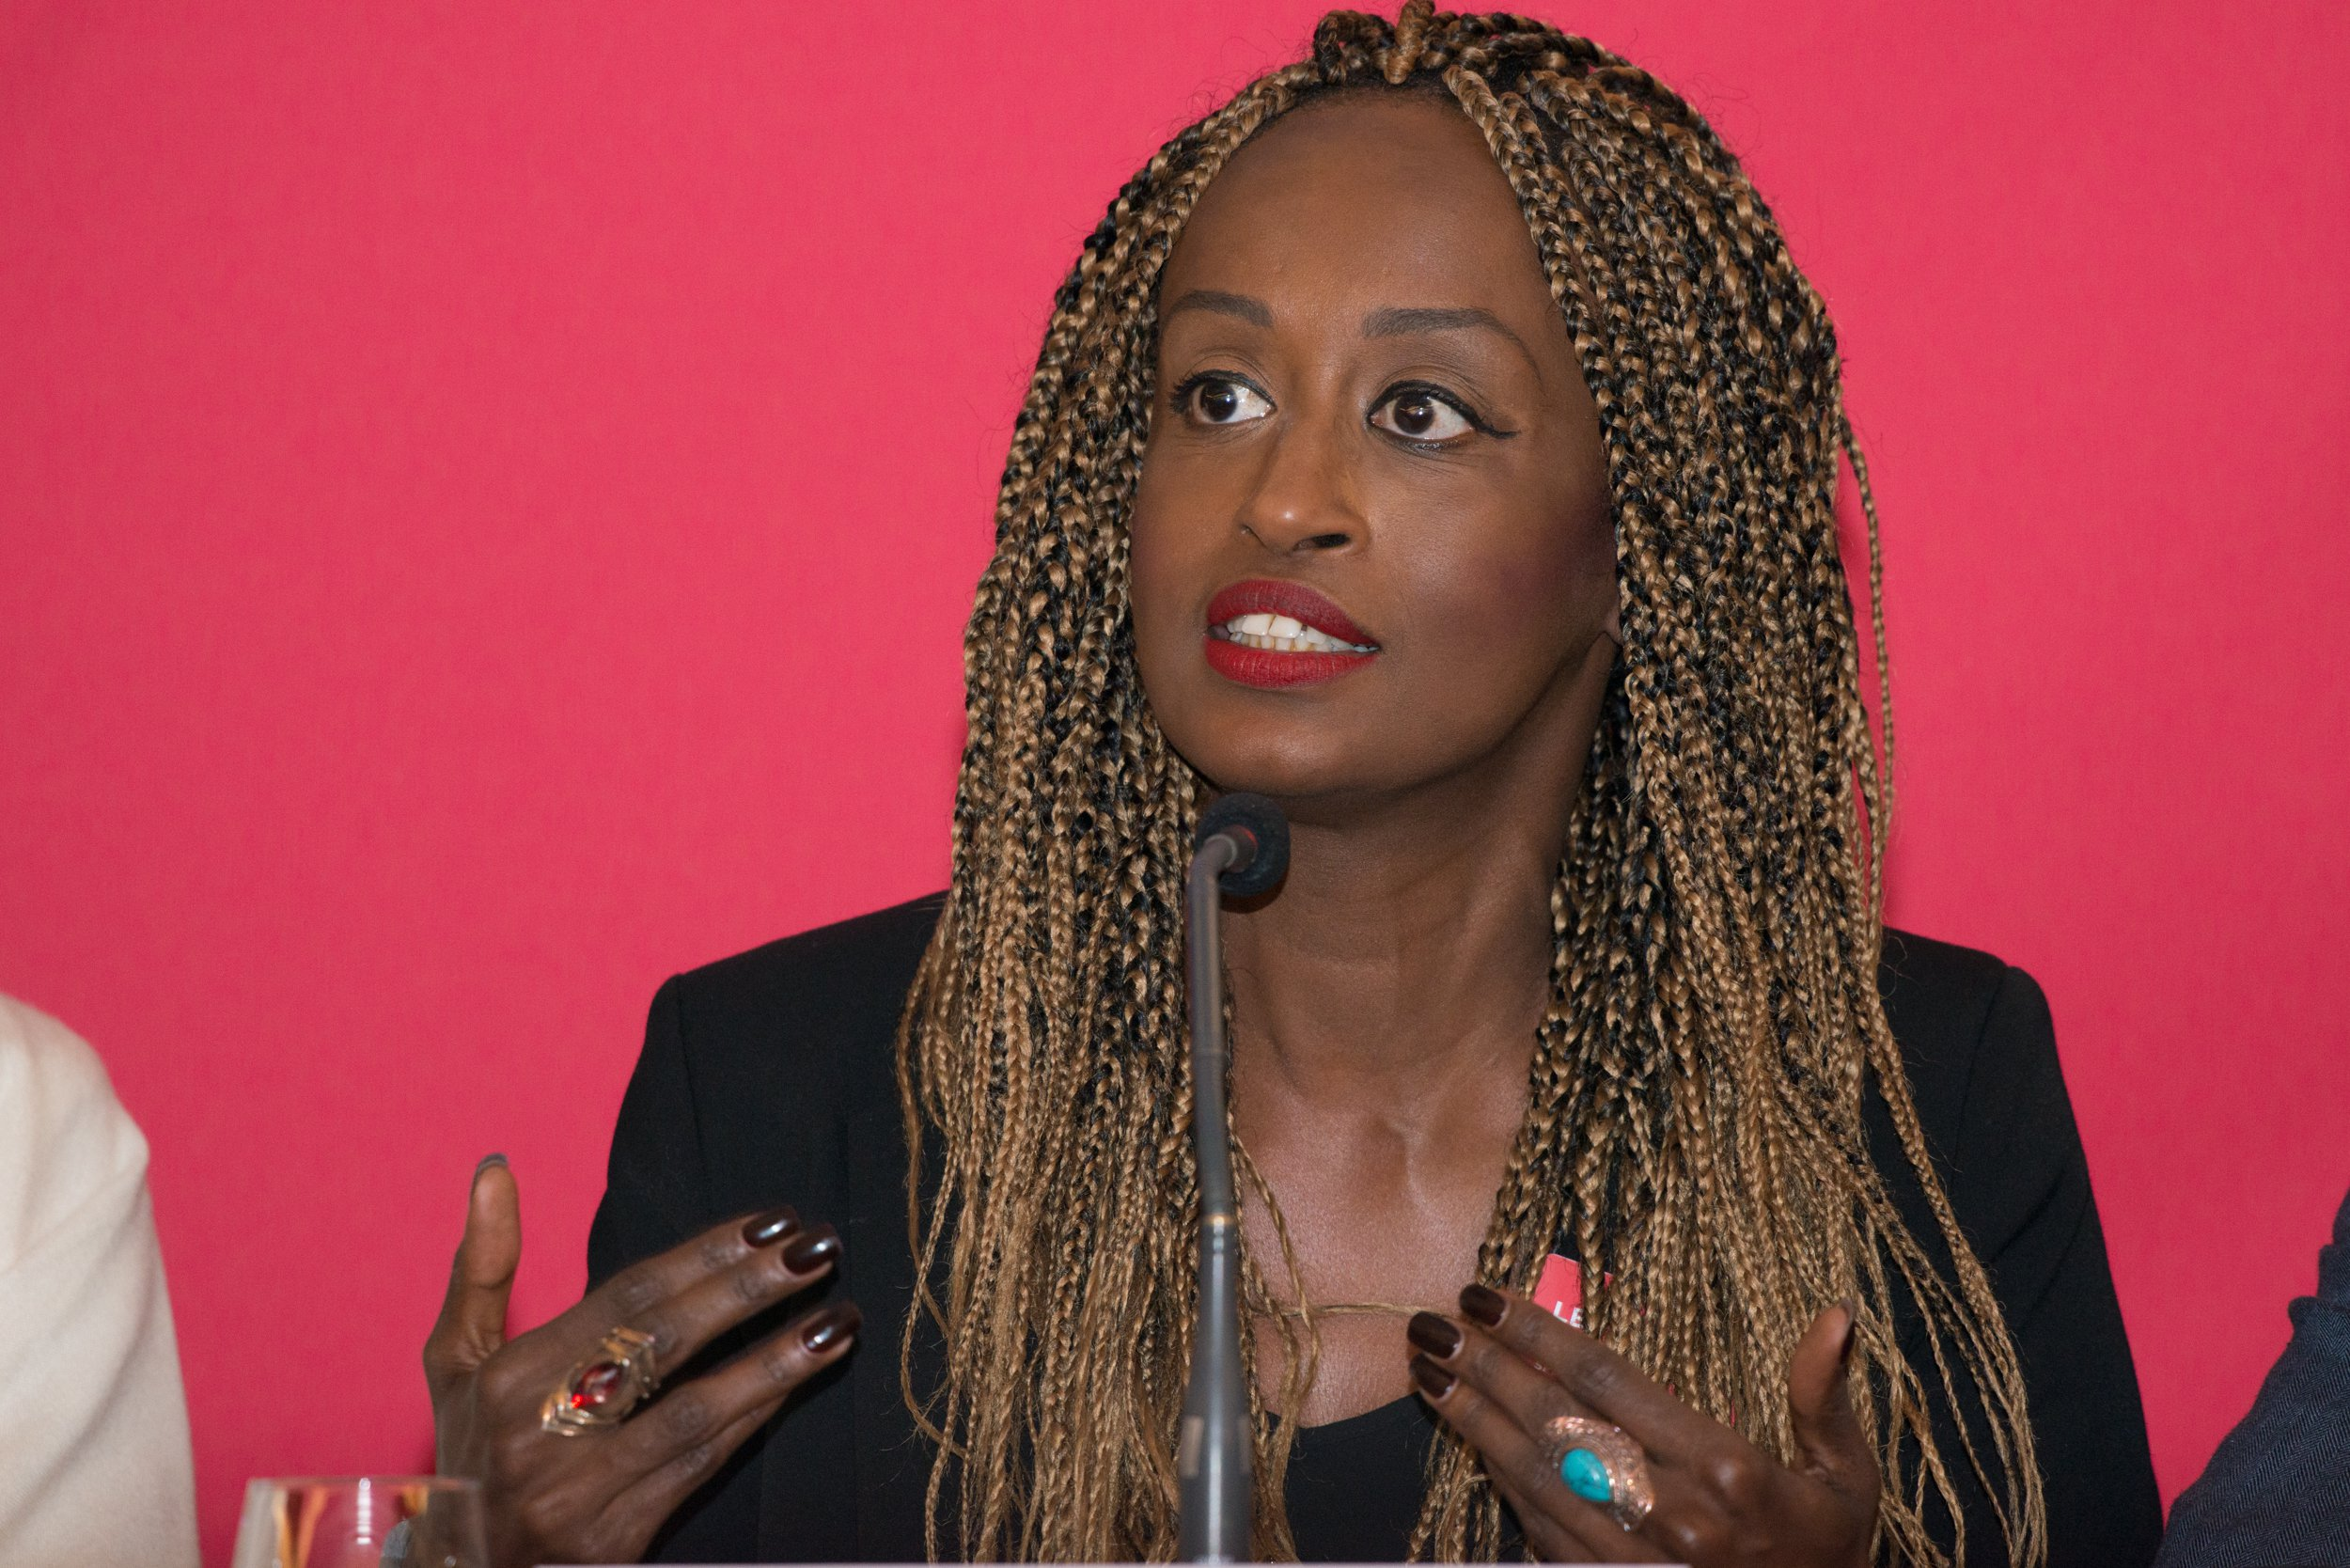 Leyla Hussein, British-Somali human rights activist campaigning against genital mutilation of women, speaks at the opening press conference of the 2017 Oslo Freedom Forum on May 22 2017 at the Intercontinental Hotel in central Oslo, Norway. During the opening press conference of the Oslo Freedom Forum, human rights activists from around the world spoke on the importance to defend democracy in today's increasingly authoritarian world. The use of fake news and the gradual disassembly and defamation of working democratic institutions, including the press, were identified as key elements of a disintegrating democratic state. (Photo by Julia Reinhart/NurPhoto) *** Please Use Credit from Credit Field ***